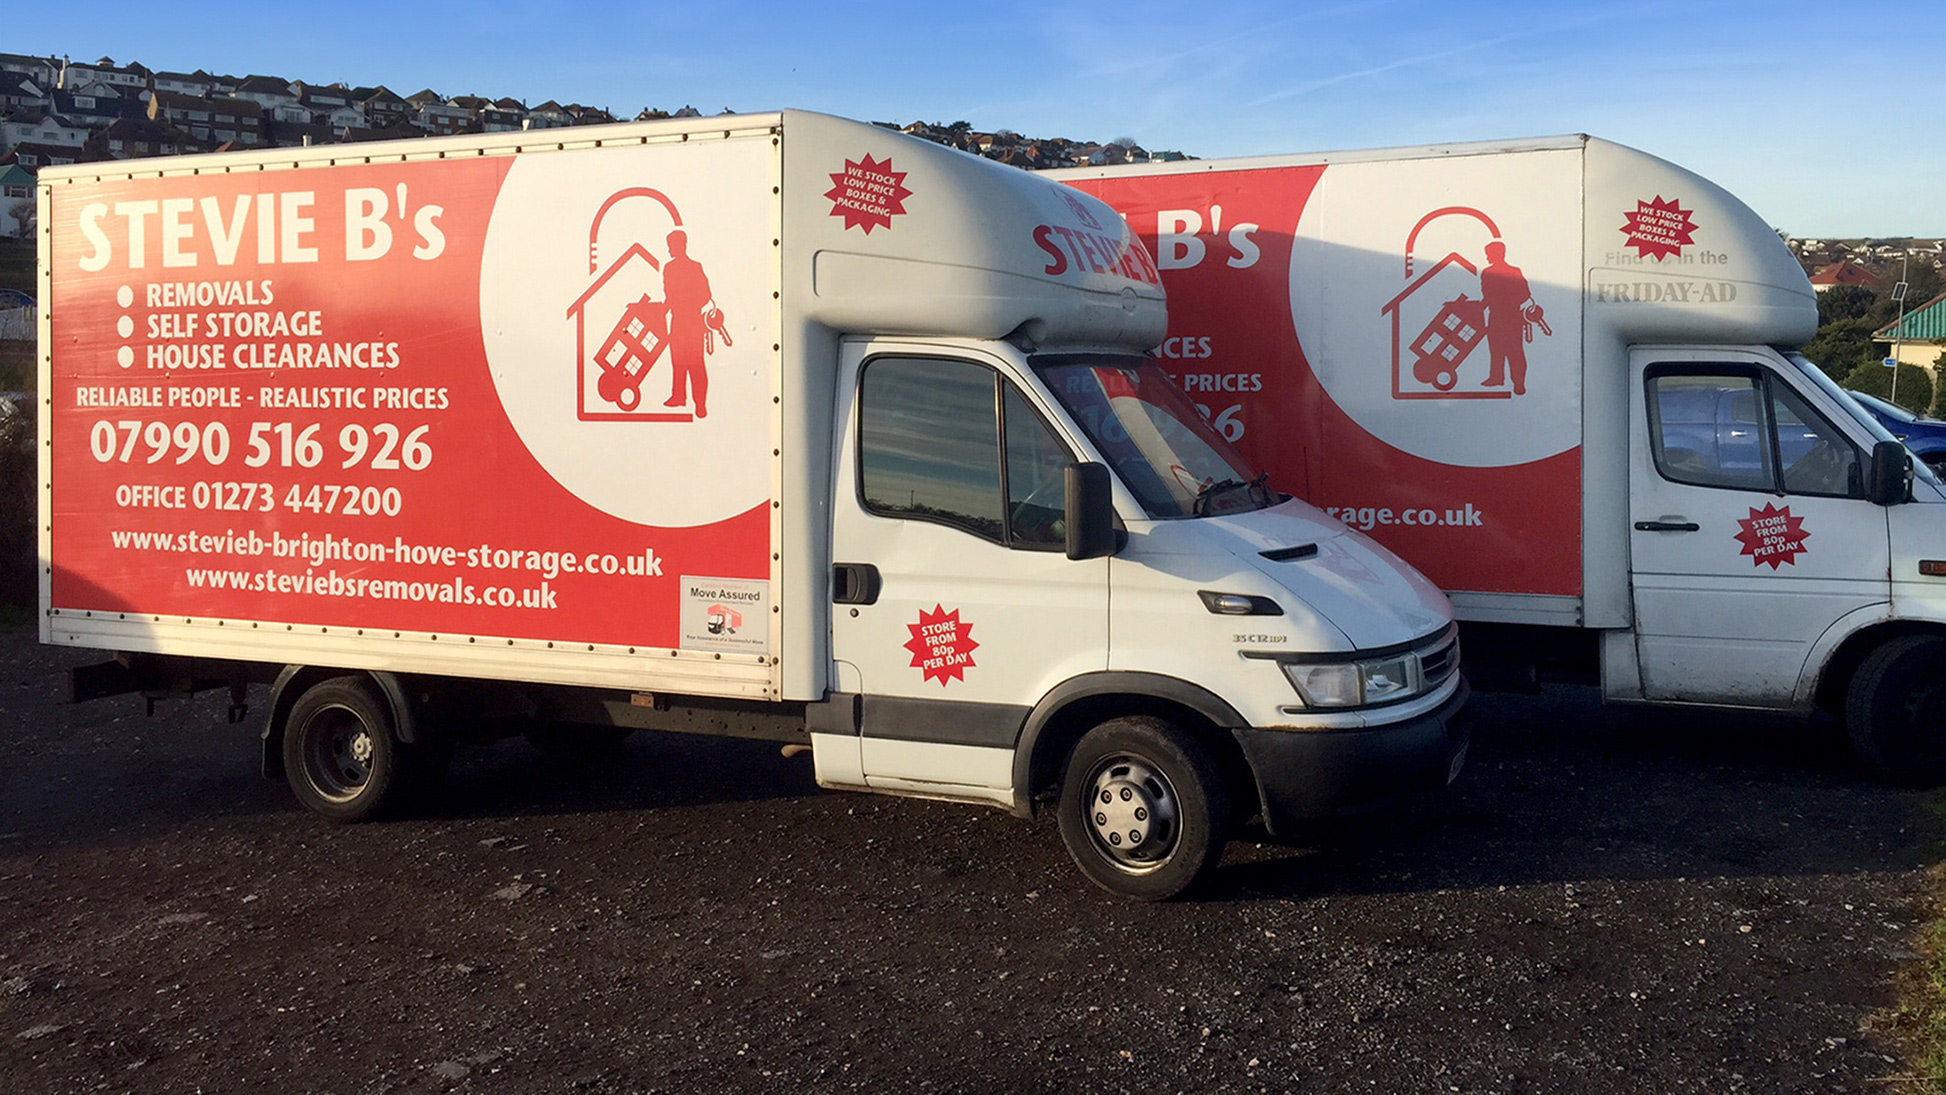 Stevie B's Removals Vans in Brighton, near Saltdean, Brighton & Hove